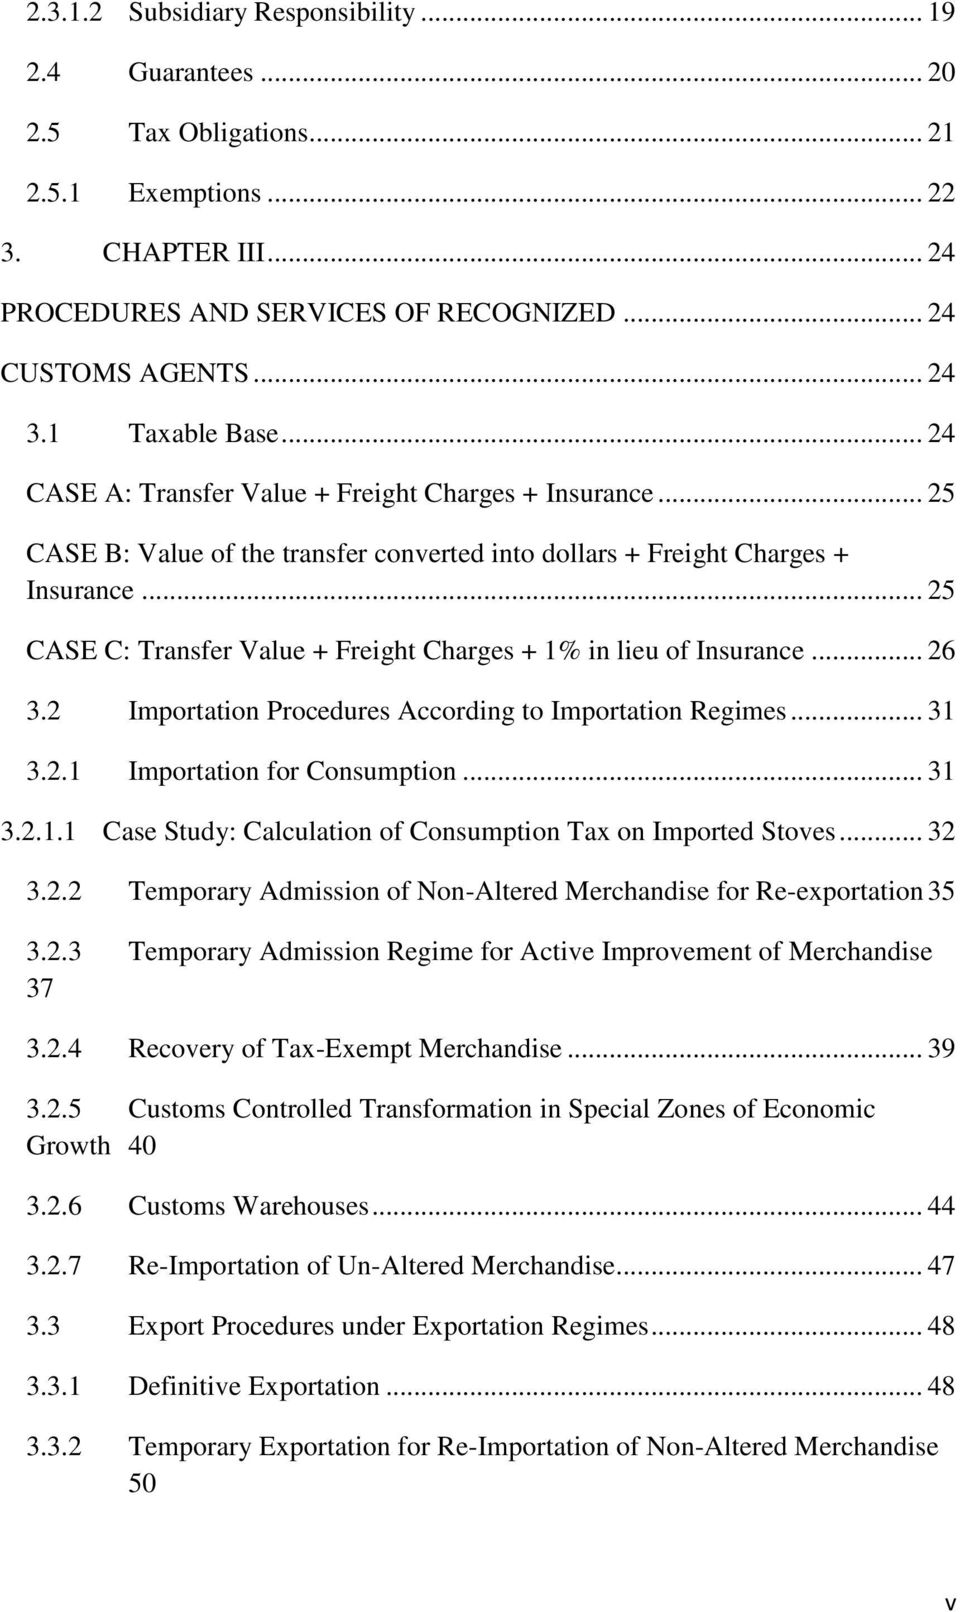 .. 25 CASE C: Transfer Value + Freight Charges + 1% in lieu of Insurance... 26 3.2 Importation Procedures According to Importation Regimes... 31 3.2.1 Importation for Consumption... 31 3.2.1.1 Case Study: Calculation of Consumption Tax on Imported Stoves.